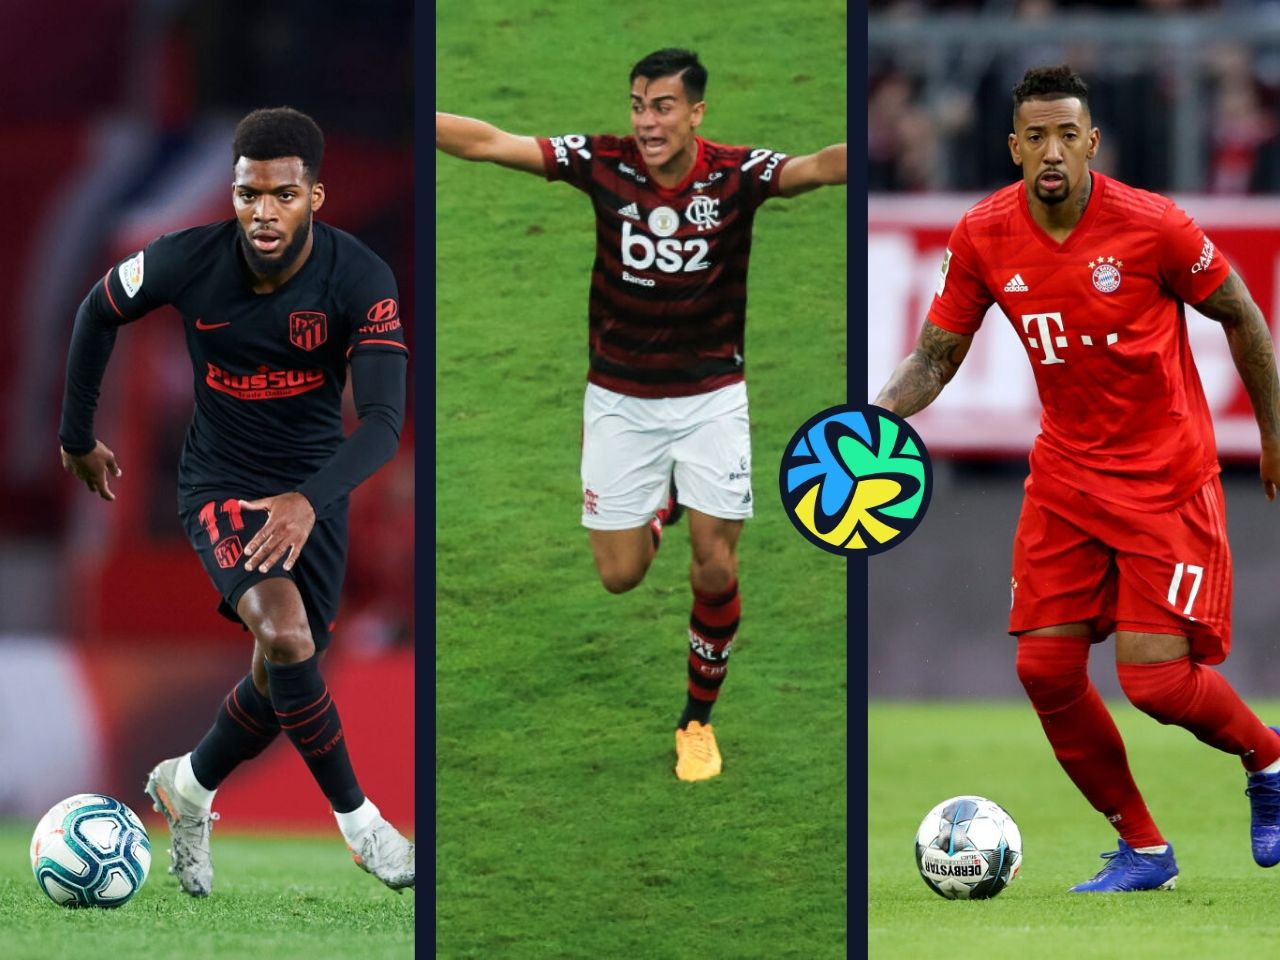 Thomas Lemar, Reinier, Jerome Boateng, Max Aarons